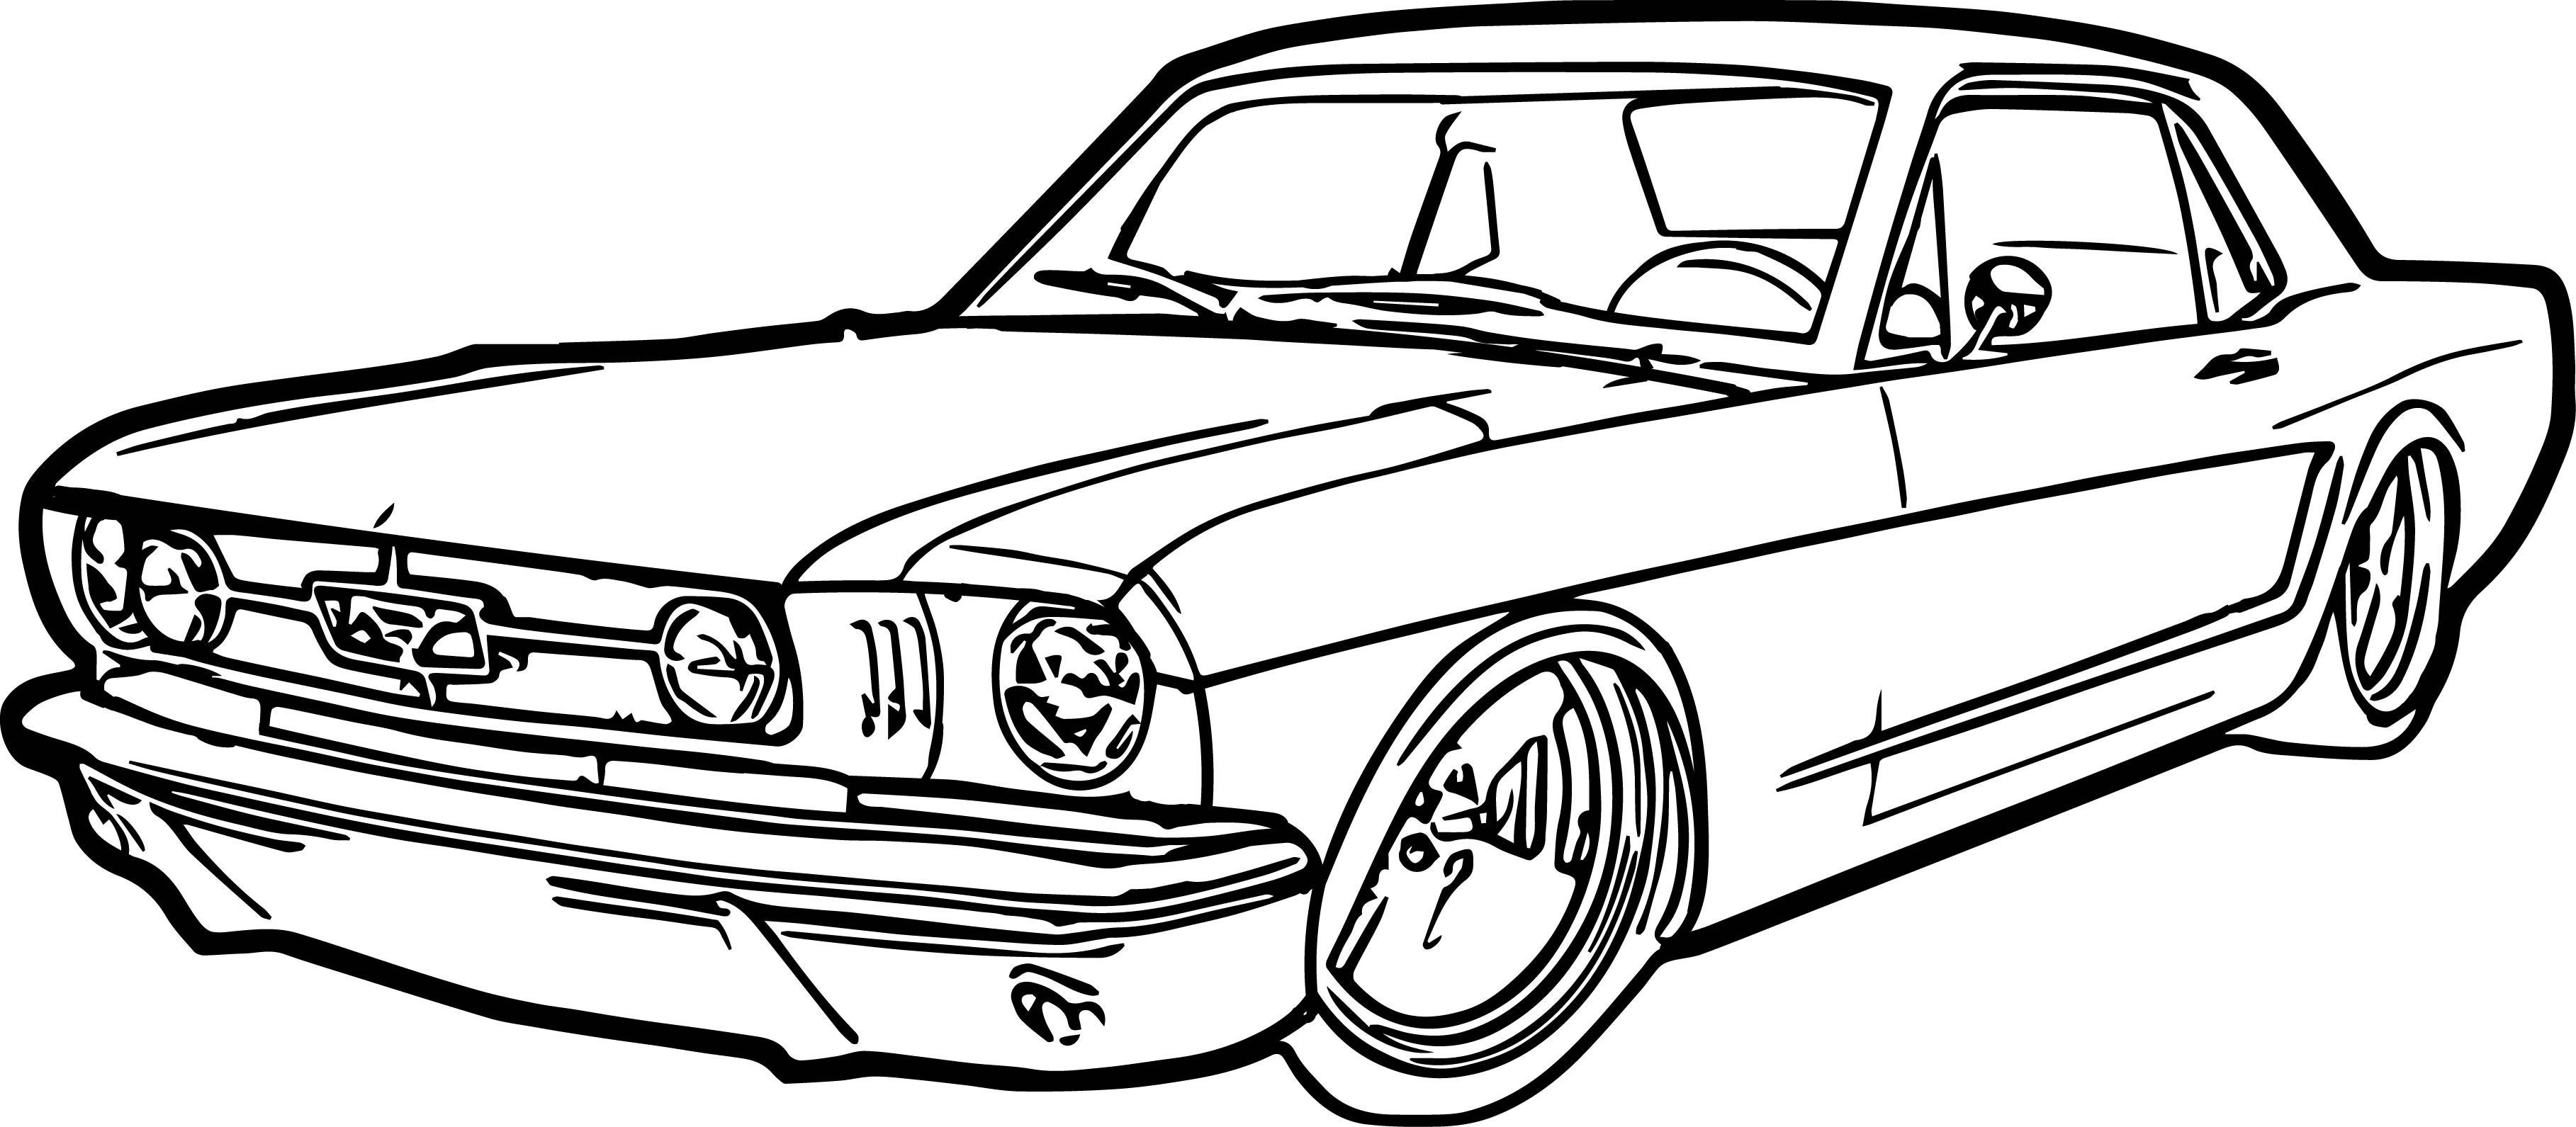 Car Coloring Books For Adults  Car Coloring Pages for Adults Gallery Free Coloring Books